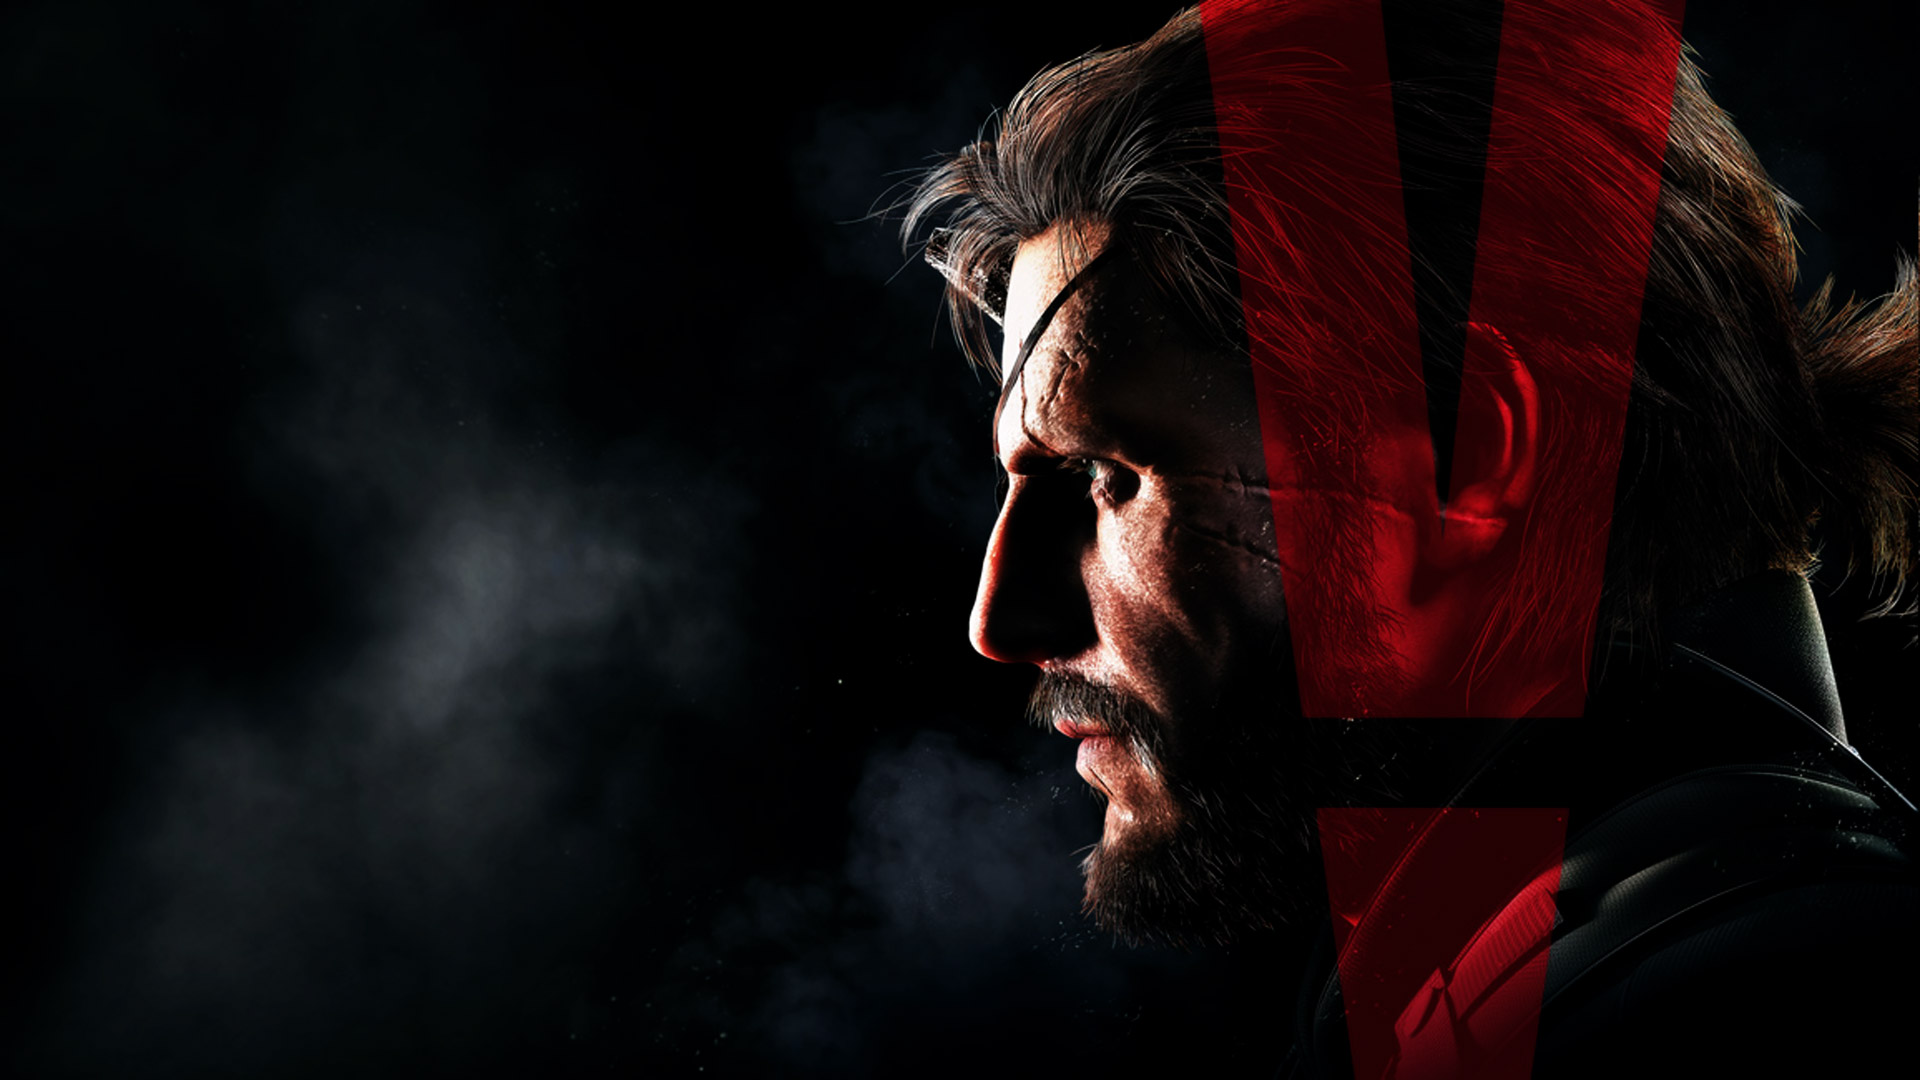 Metal Gear Solid 5 Wallpapers